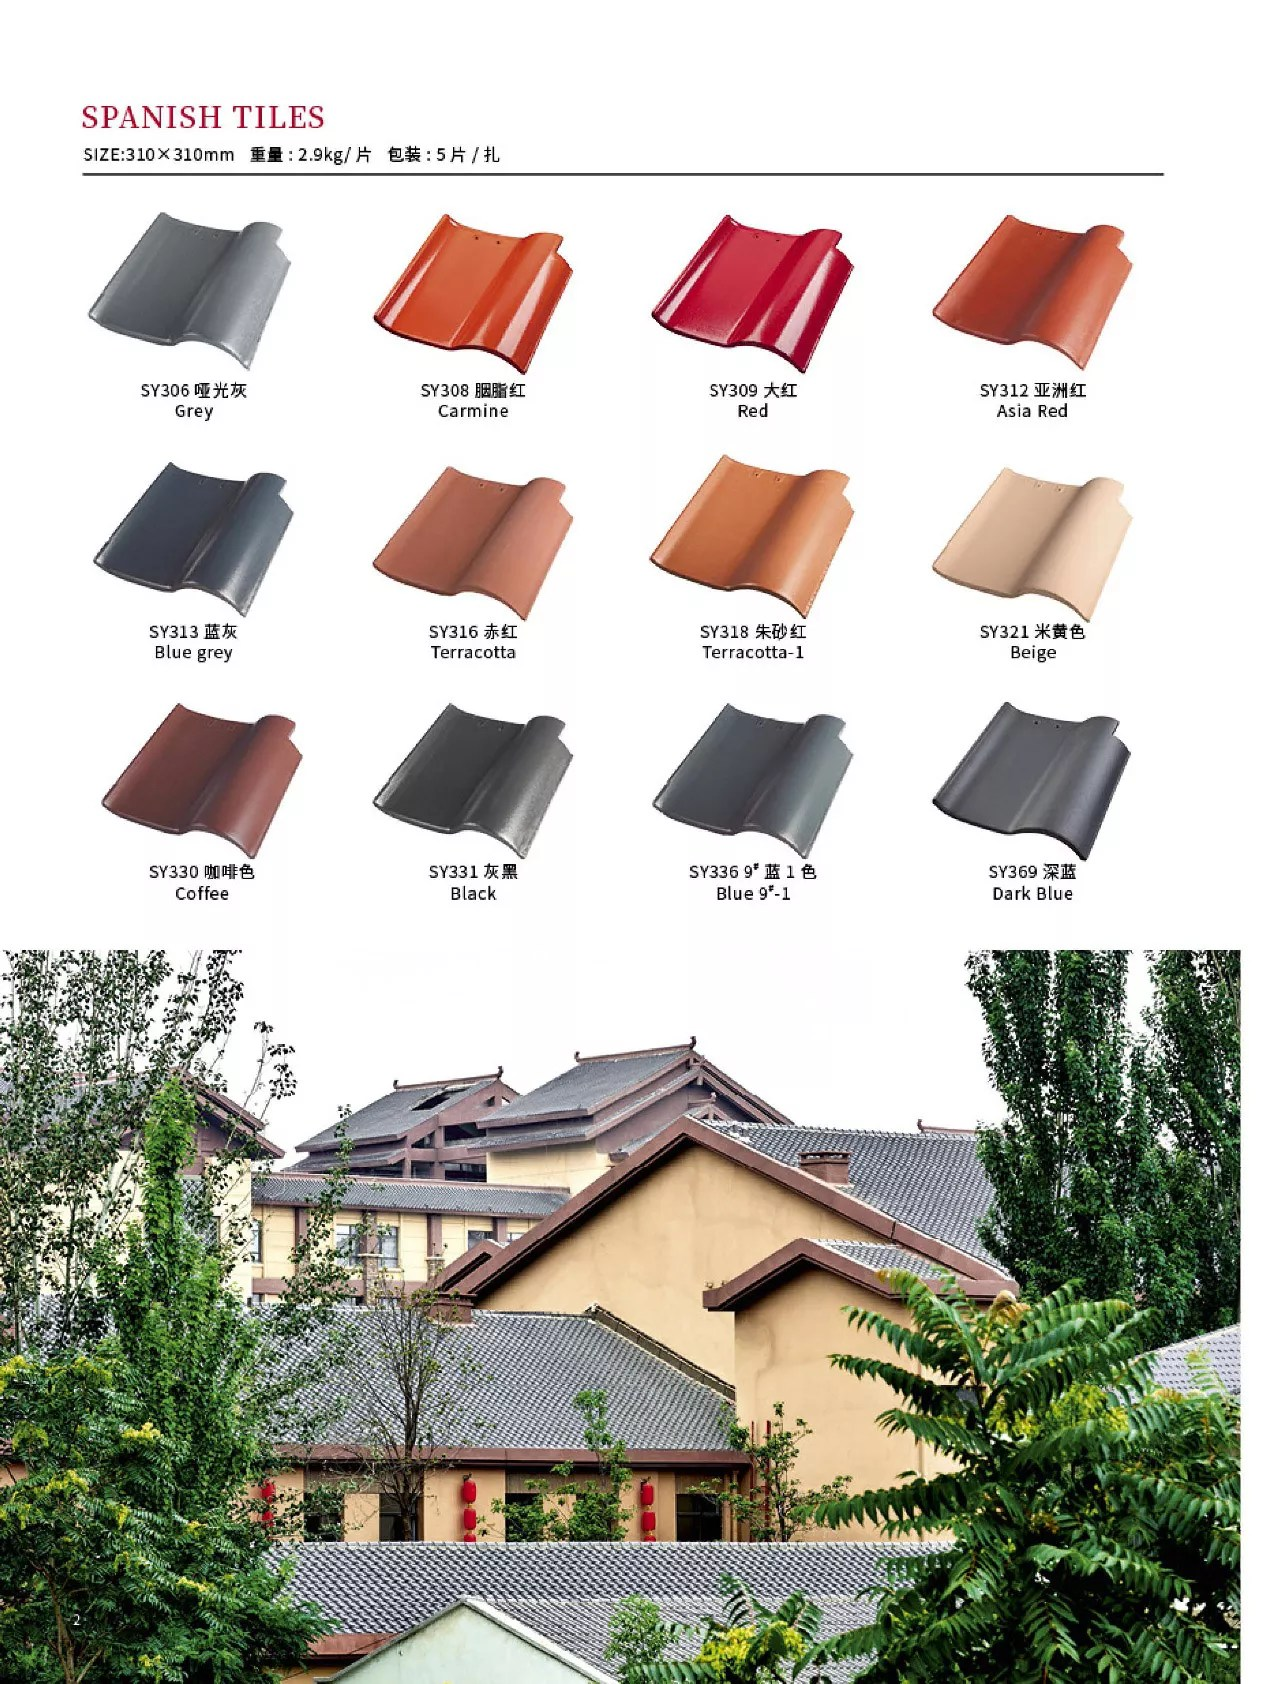 synthetic spanish s type clay glazed roof tiles in sri lanka buy glazed roof tiles synthetic spanish roof tile s type clay roof tile product on